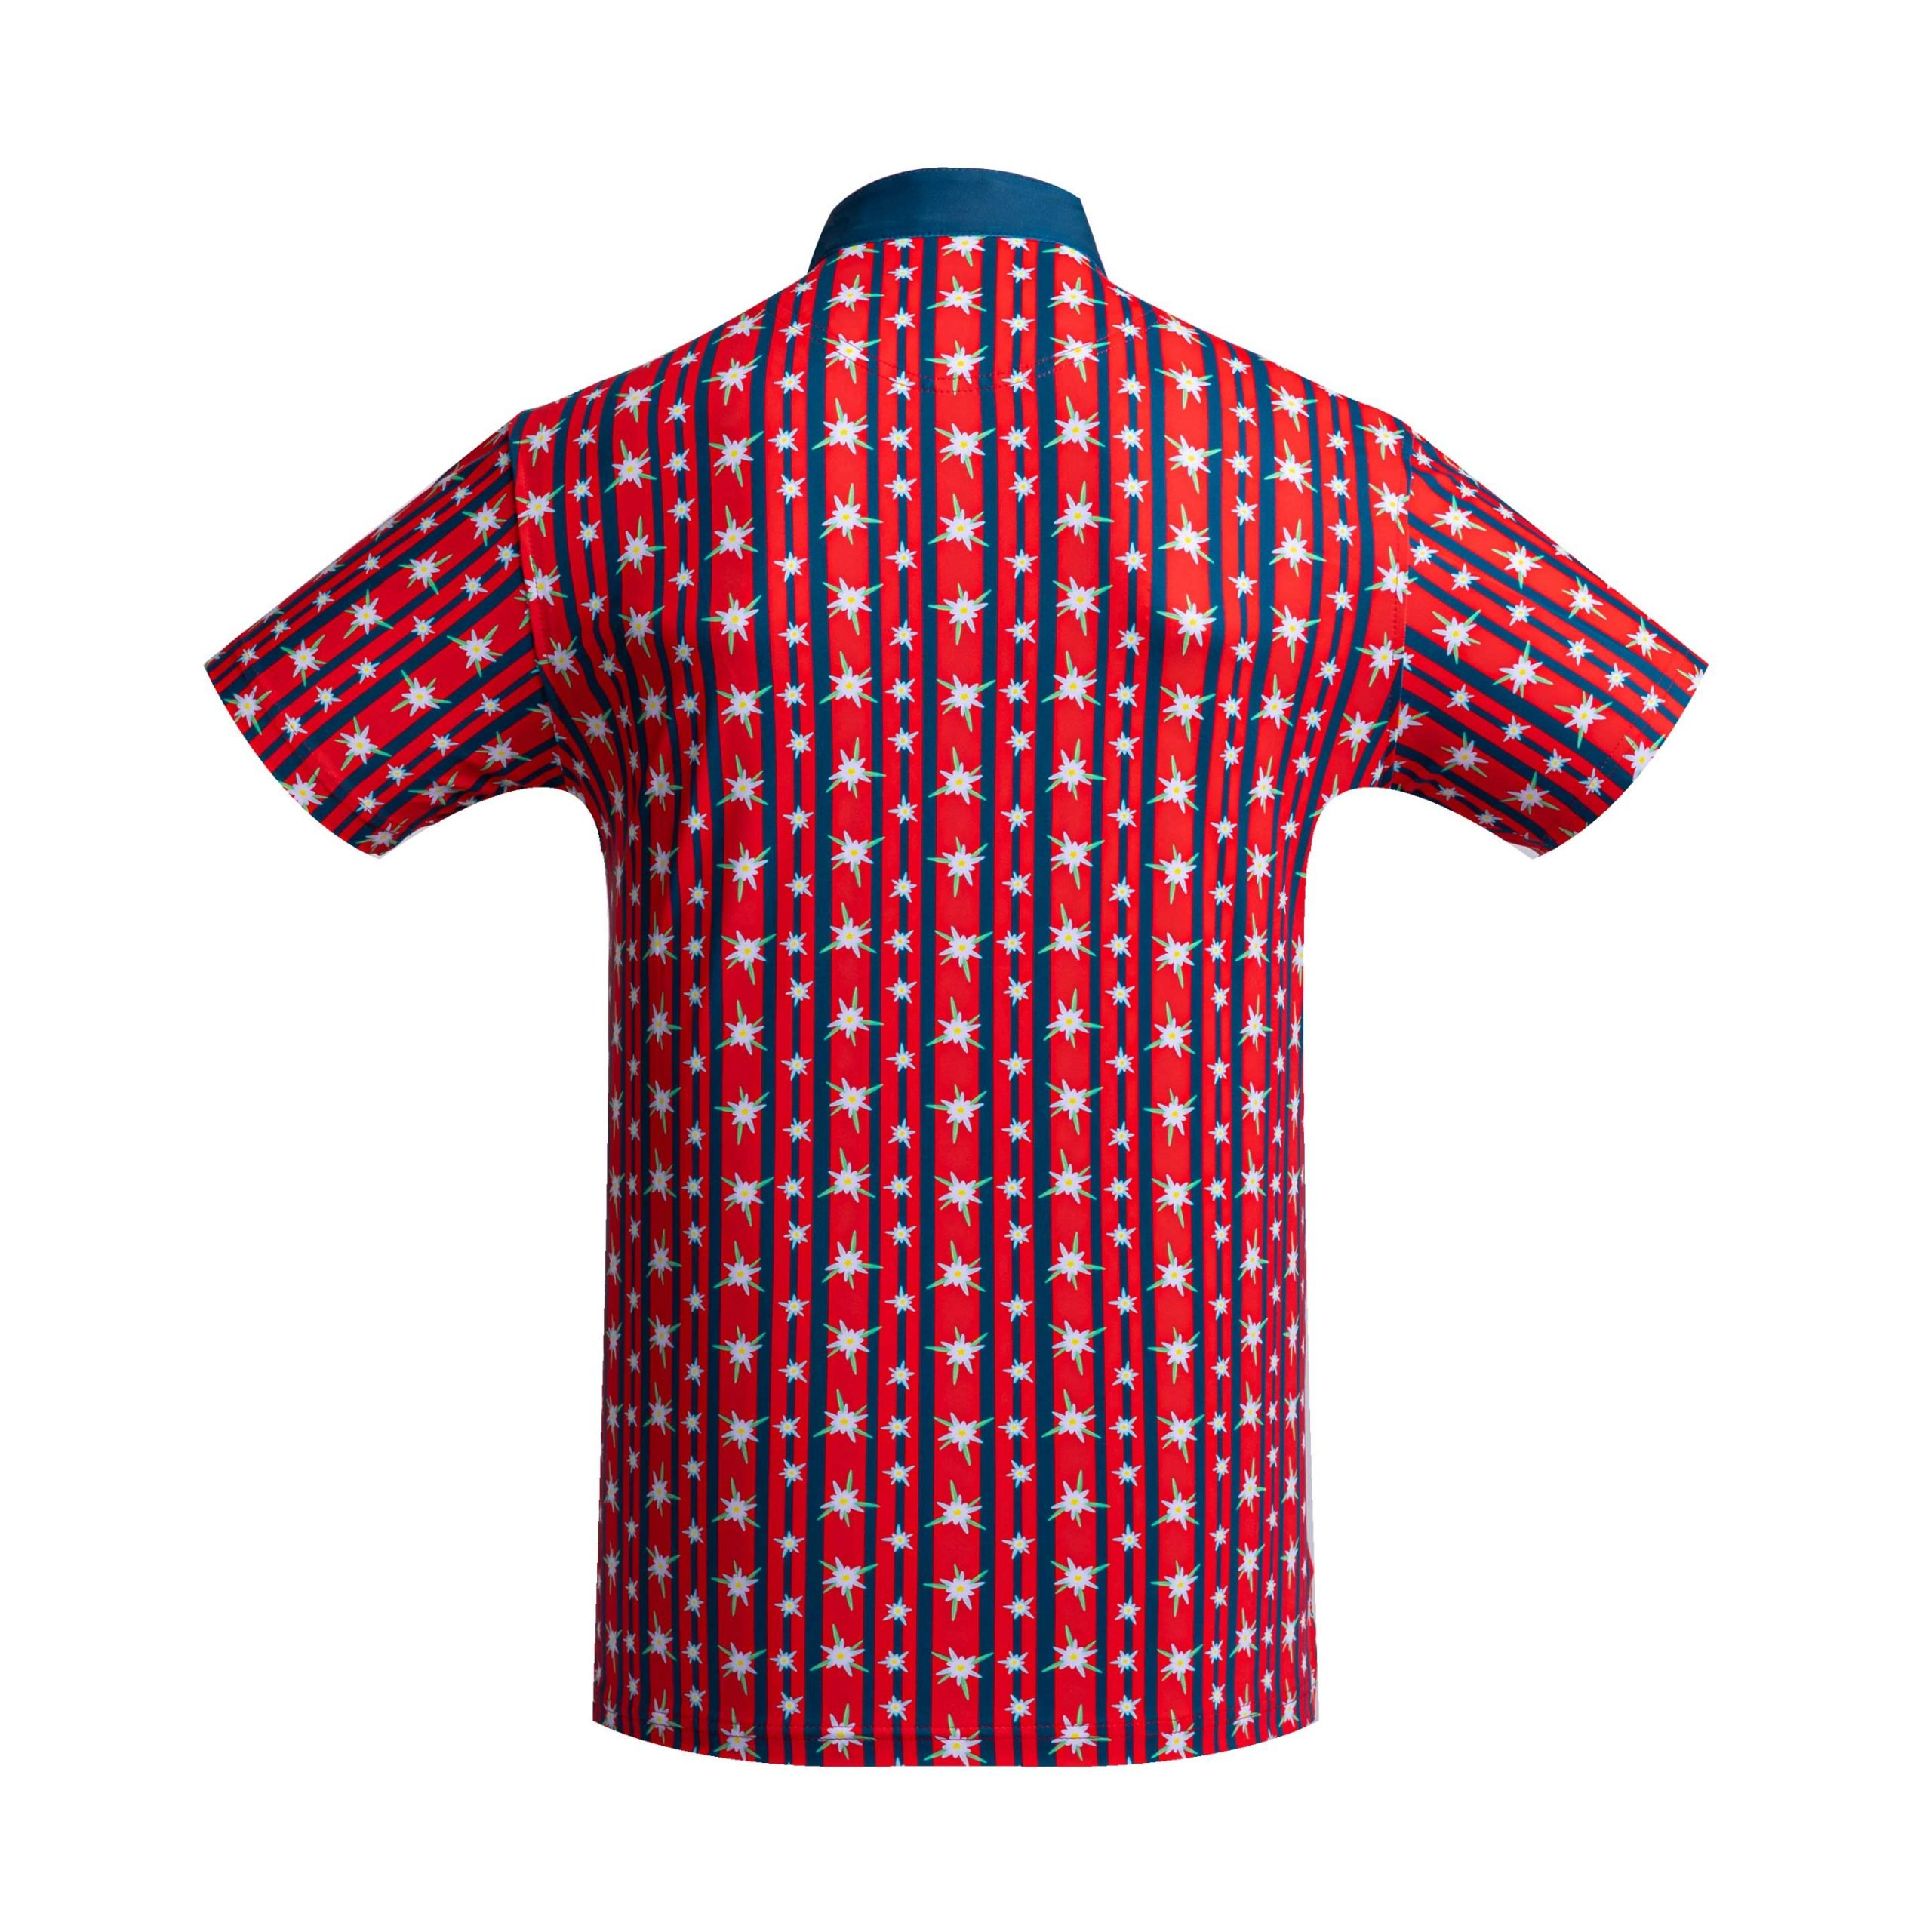 Golf shirt - Red Edelweiss